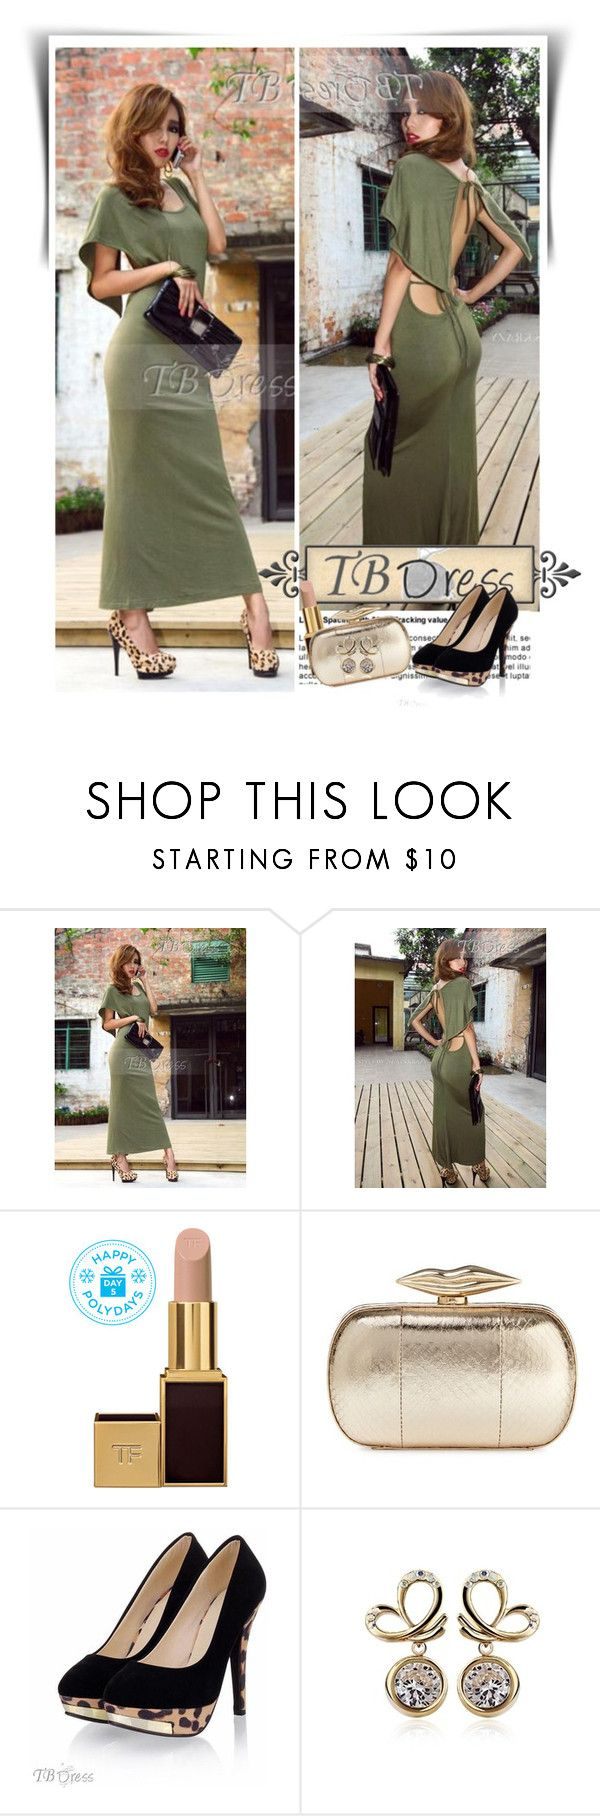 """""""TB Dress"""" by dalila-mujic ❤ liked on Polyvore featuring Tom Ford, Diane Von Furstenberg and tbdress"""